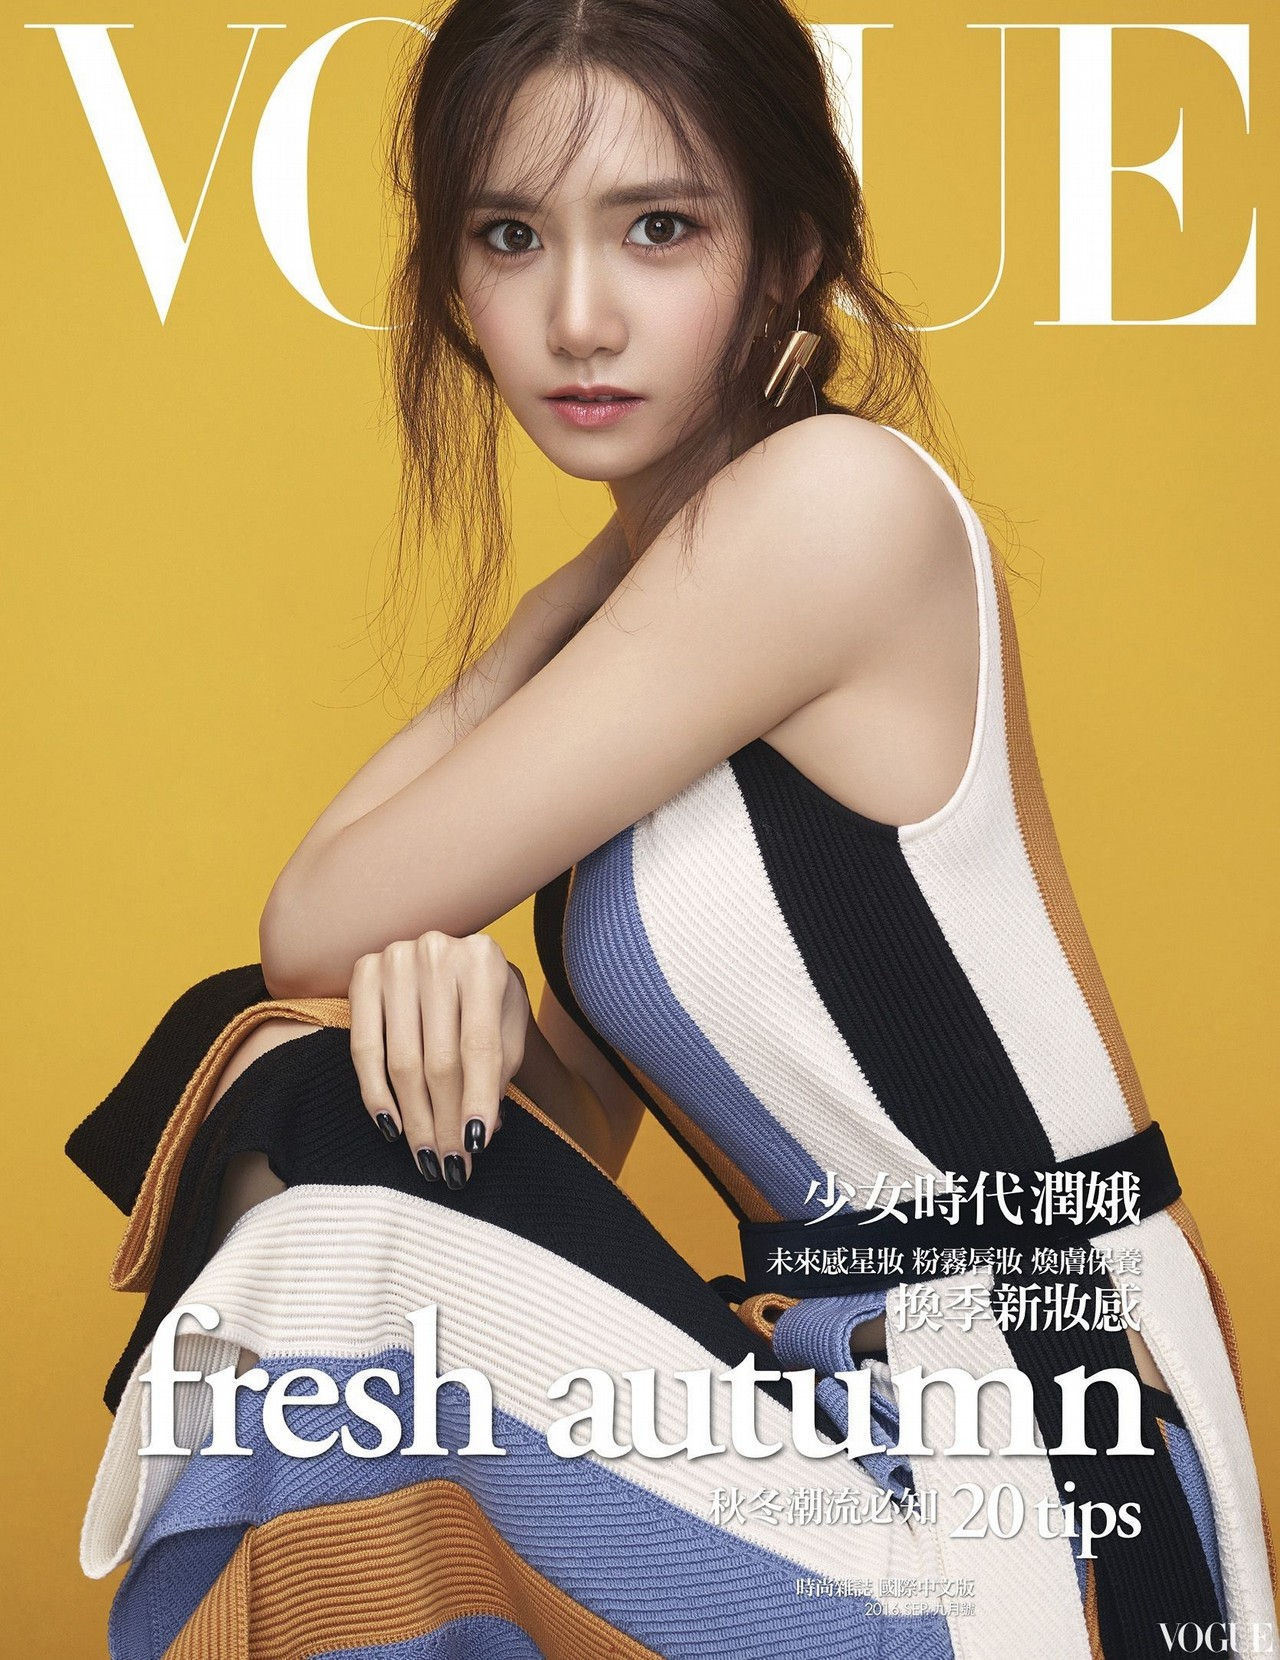 Yoona for Vogue Taiwan 01 Drama Chronicles